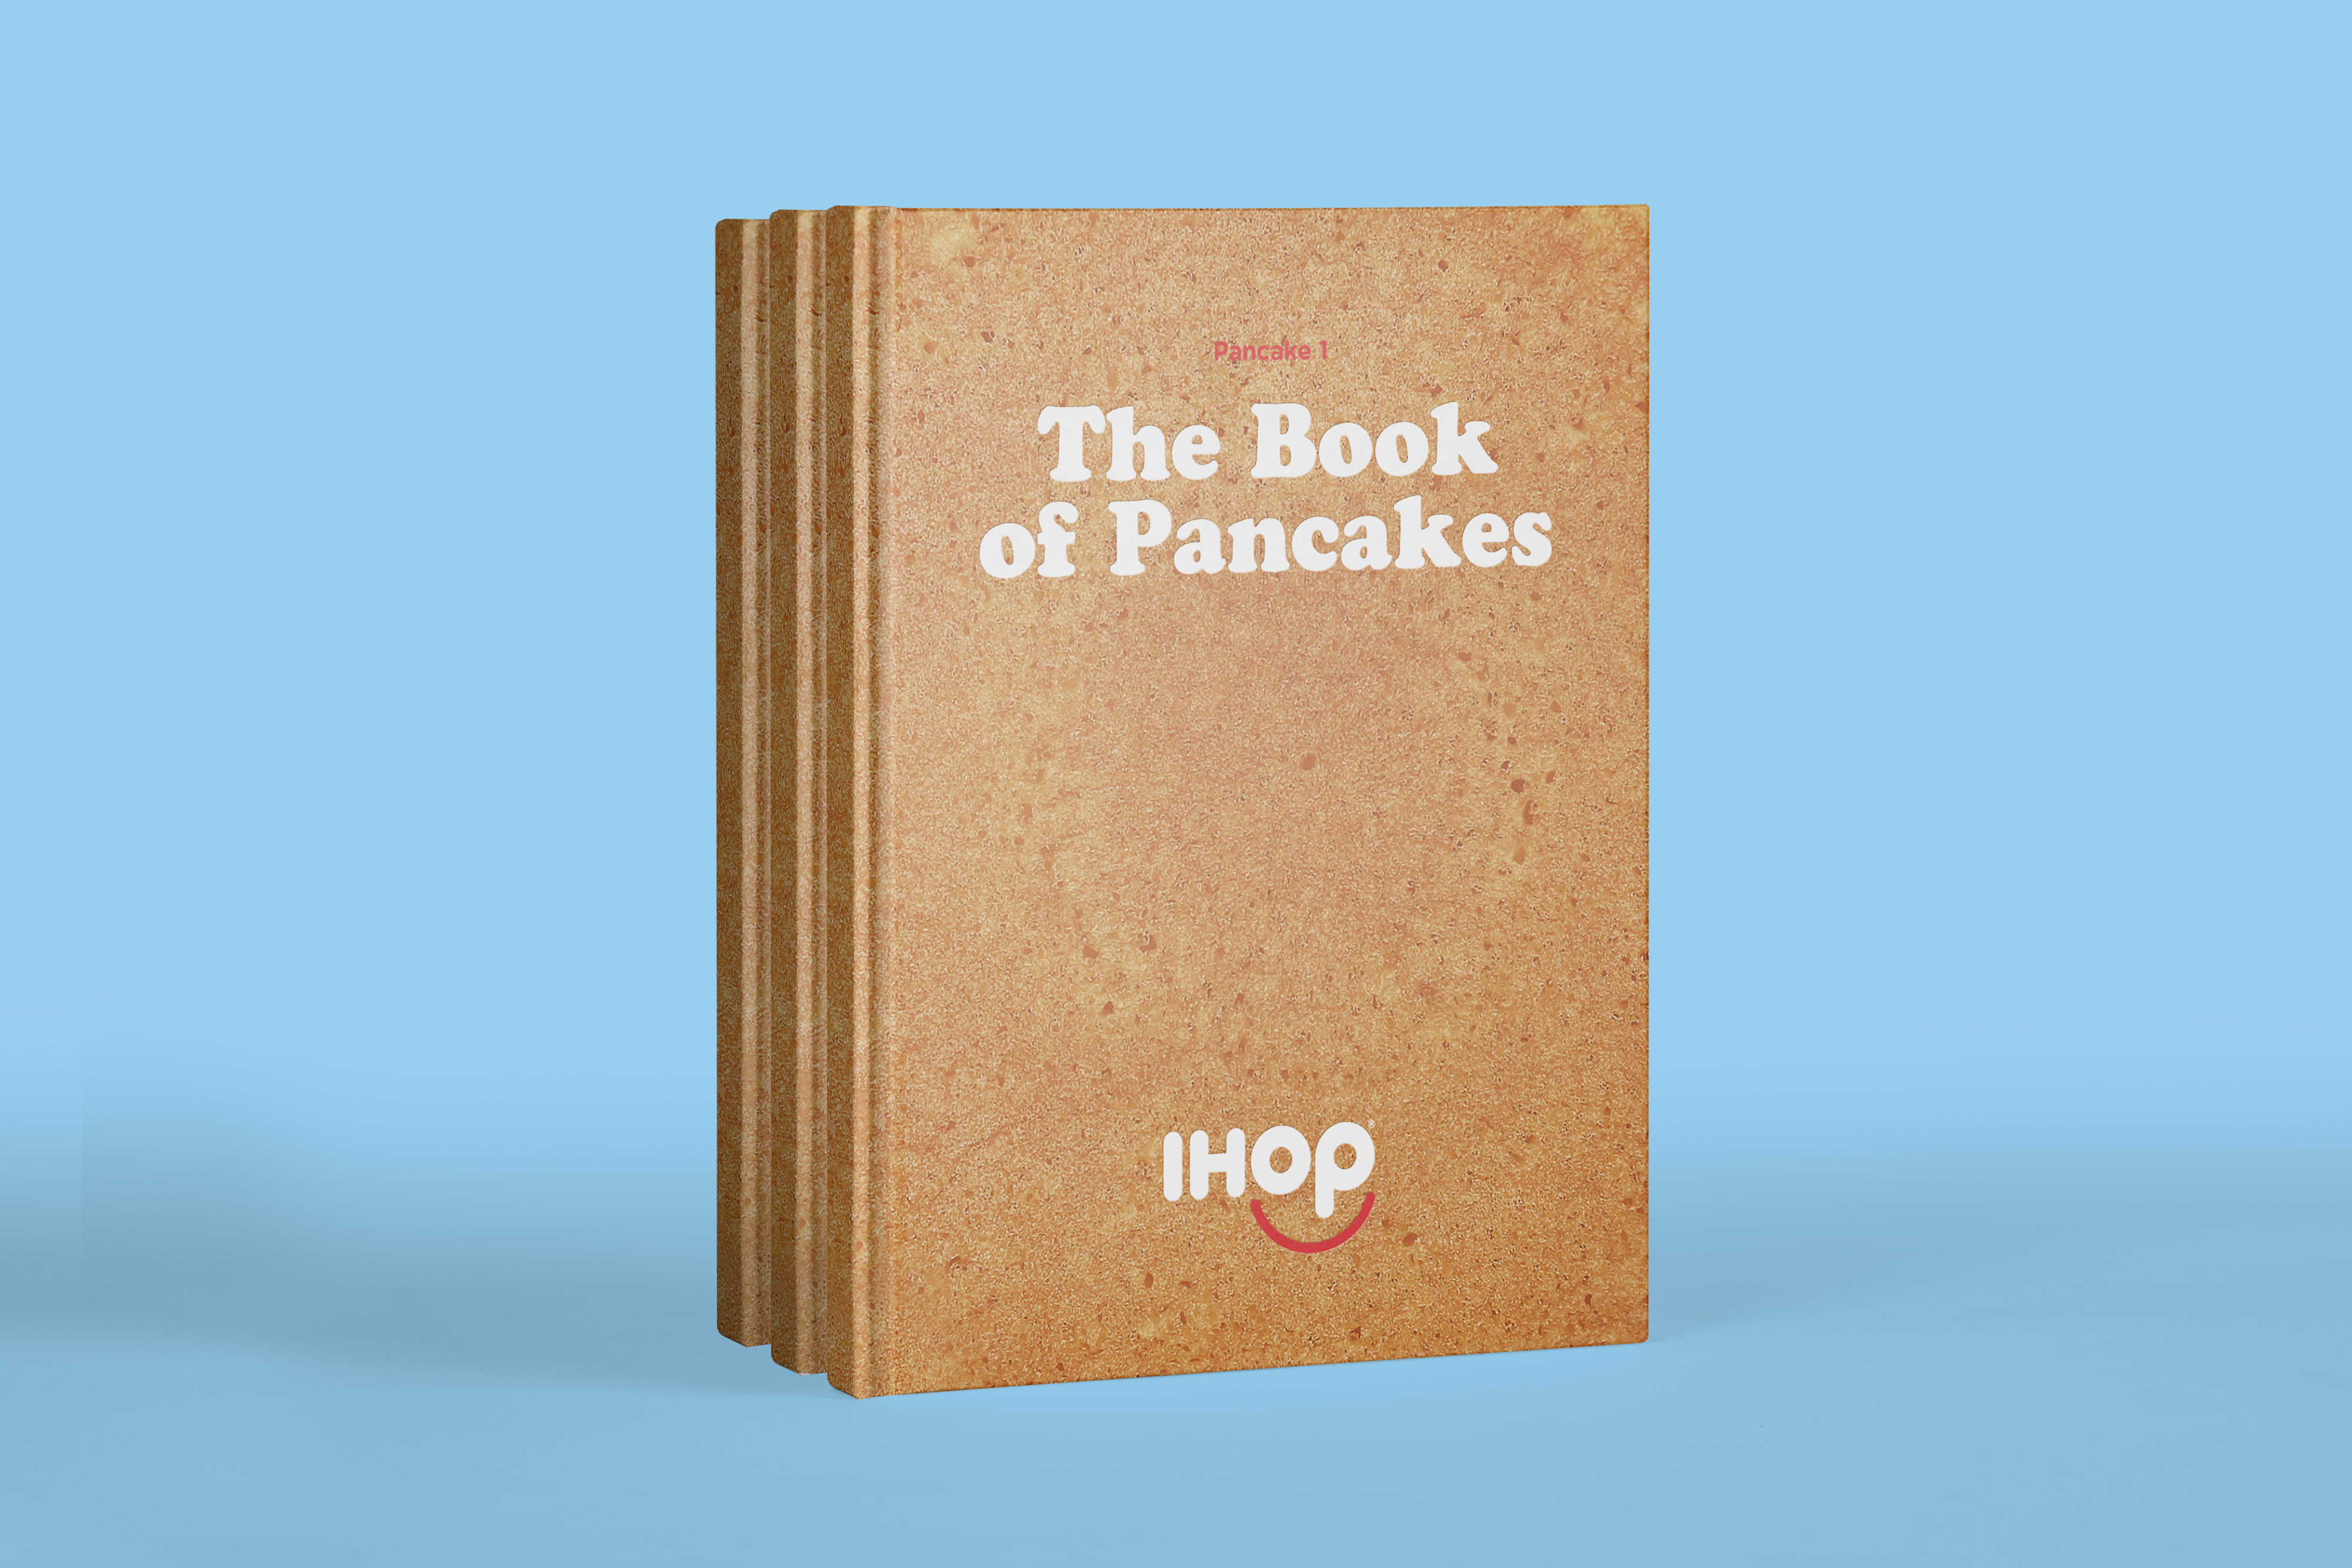 IHOP-Brand-Book-Cover